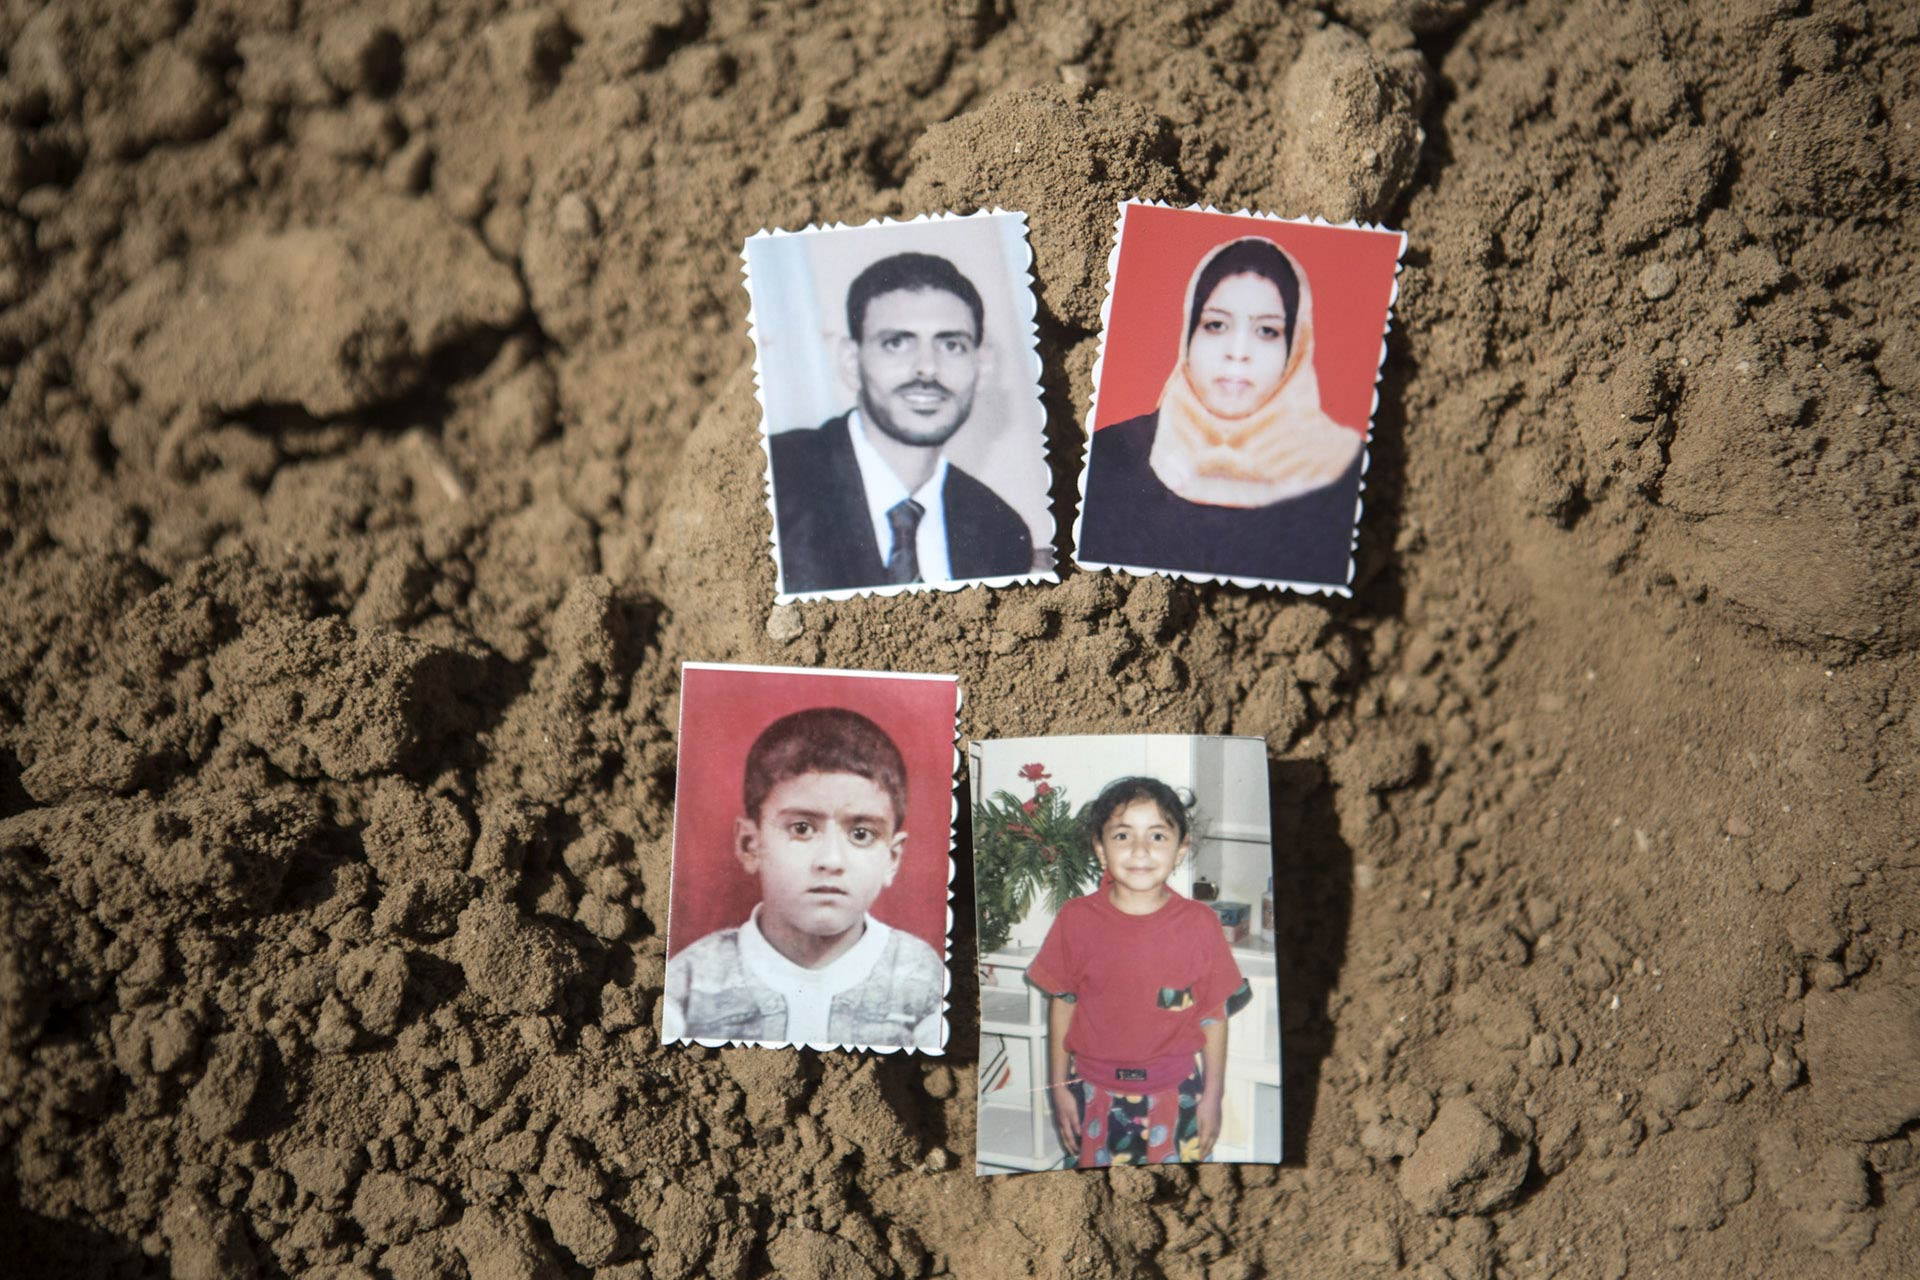 Rafat, Mustafa's son, had three little kids. Two boys, the eldest nine-year-old Mustafa, named traditionally after his grandfather, Maysara, eight years old, and a daughter named Farah, six years old. His wife Nabila was pregnant at the time of the attack. The photo of 9-year-old Mustafa is missing.